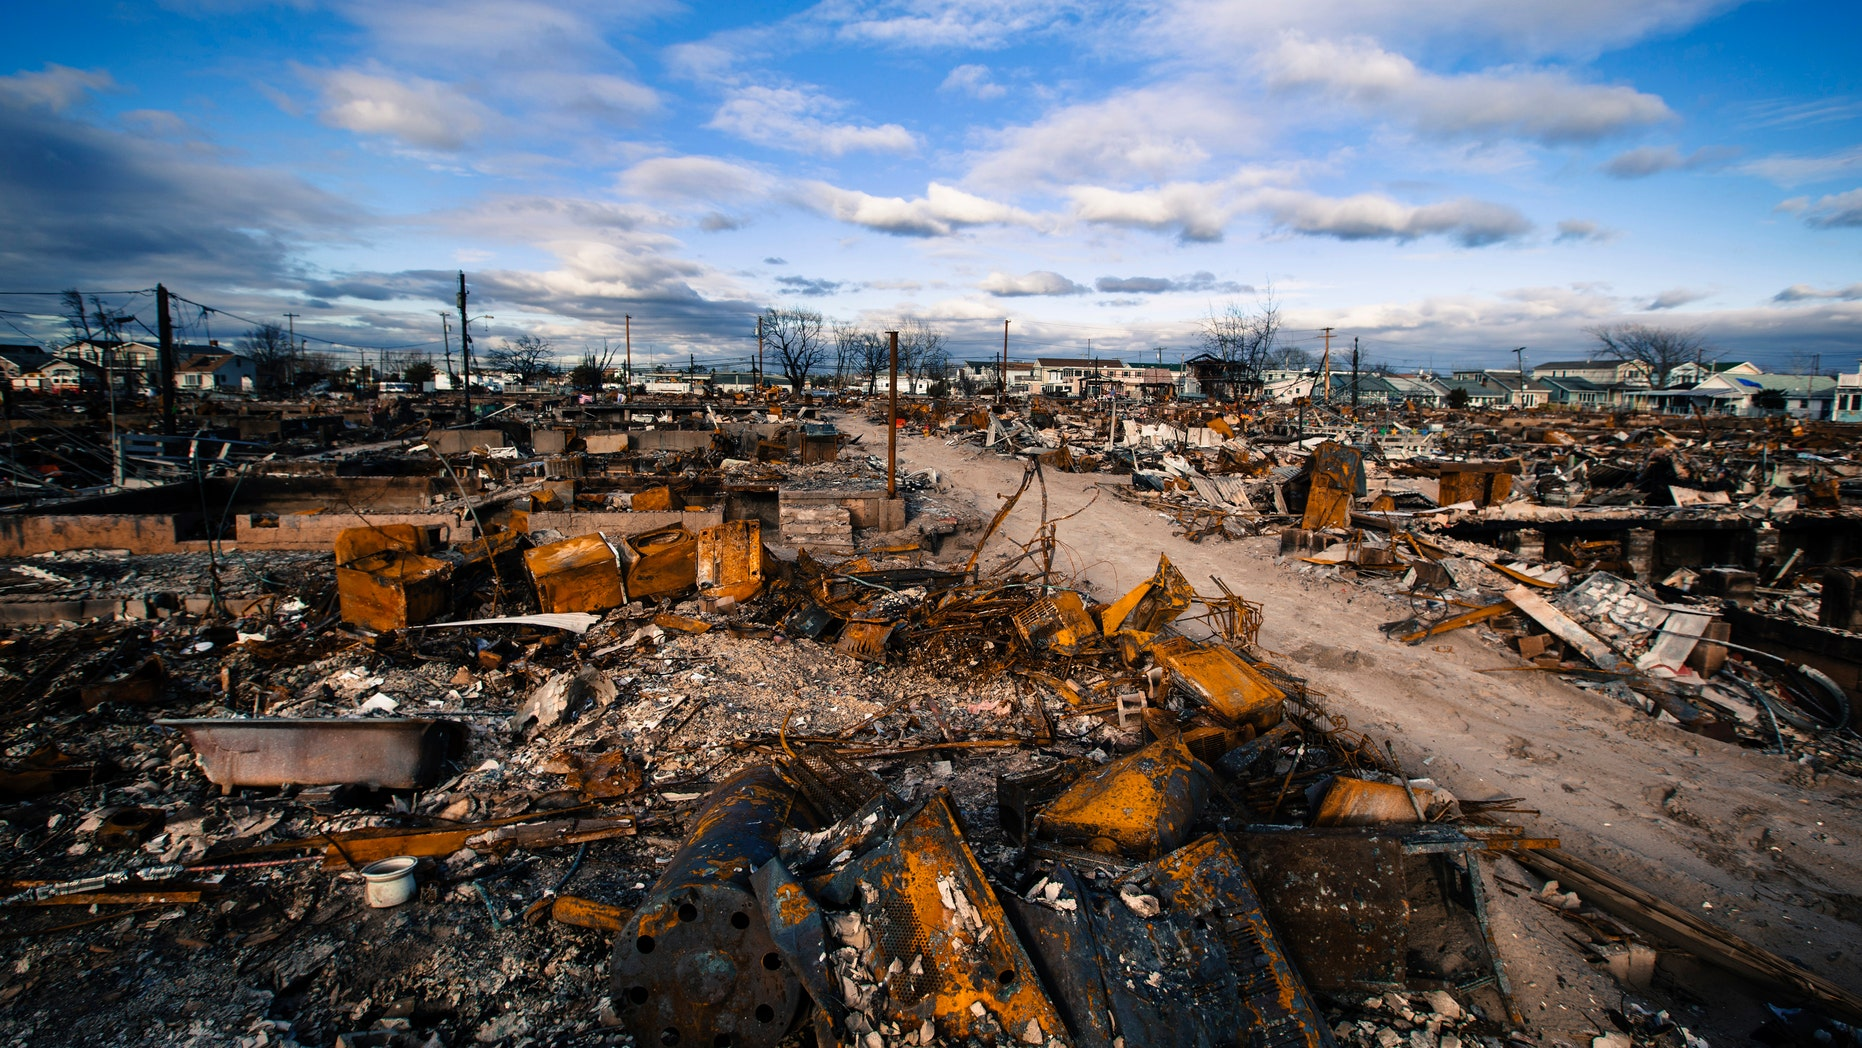 Clouds roll over destroyed homes after superstorm Sandy caused damage in the region of Breezy Point of Queens borough, New York.